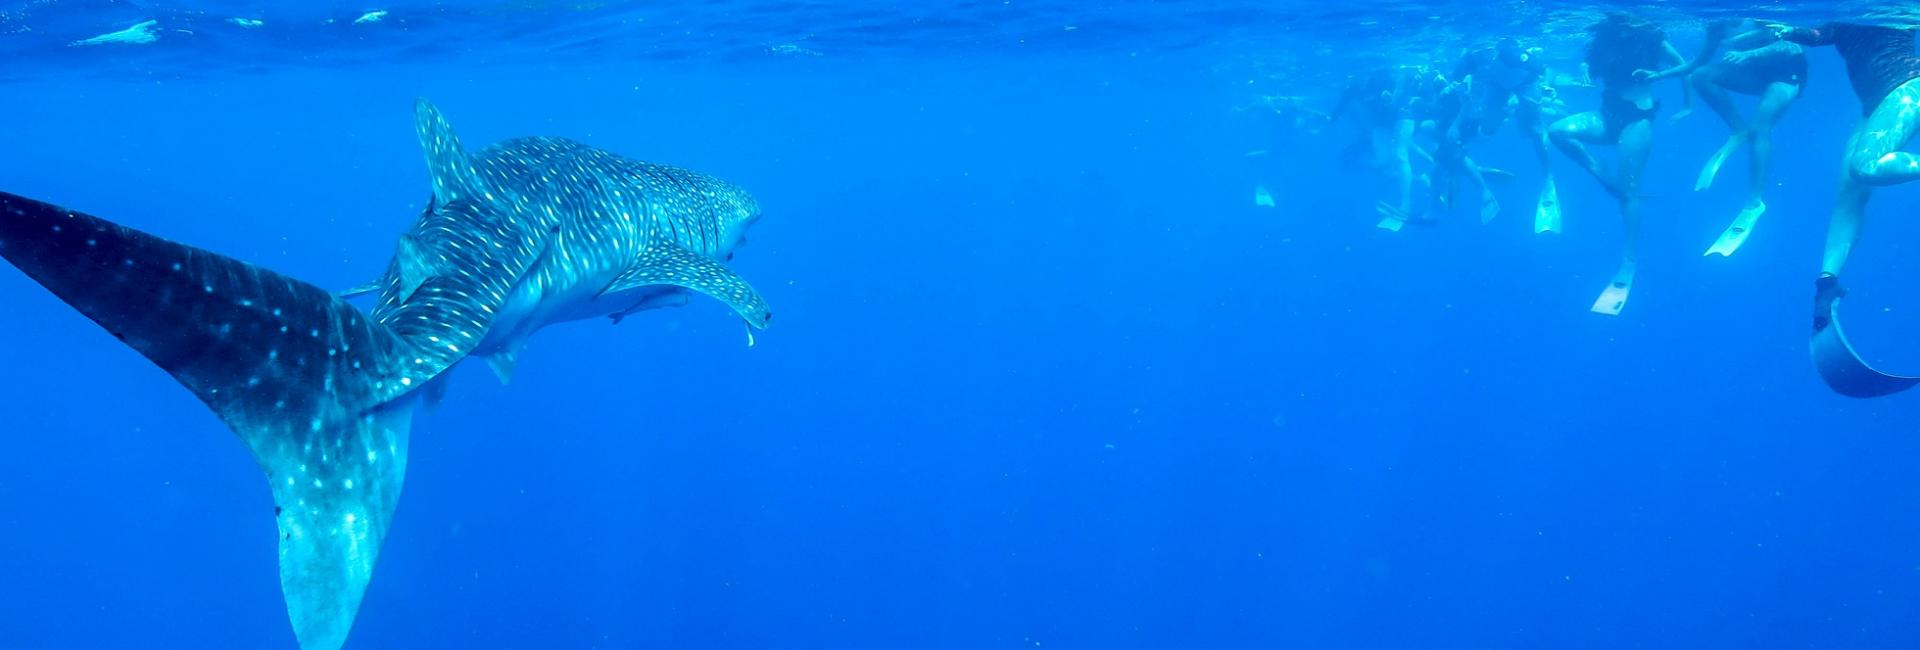 Ningaloo reef dive and snorkel australia 39 s coral coast - Ningaloo reef dive ...